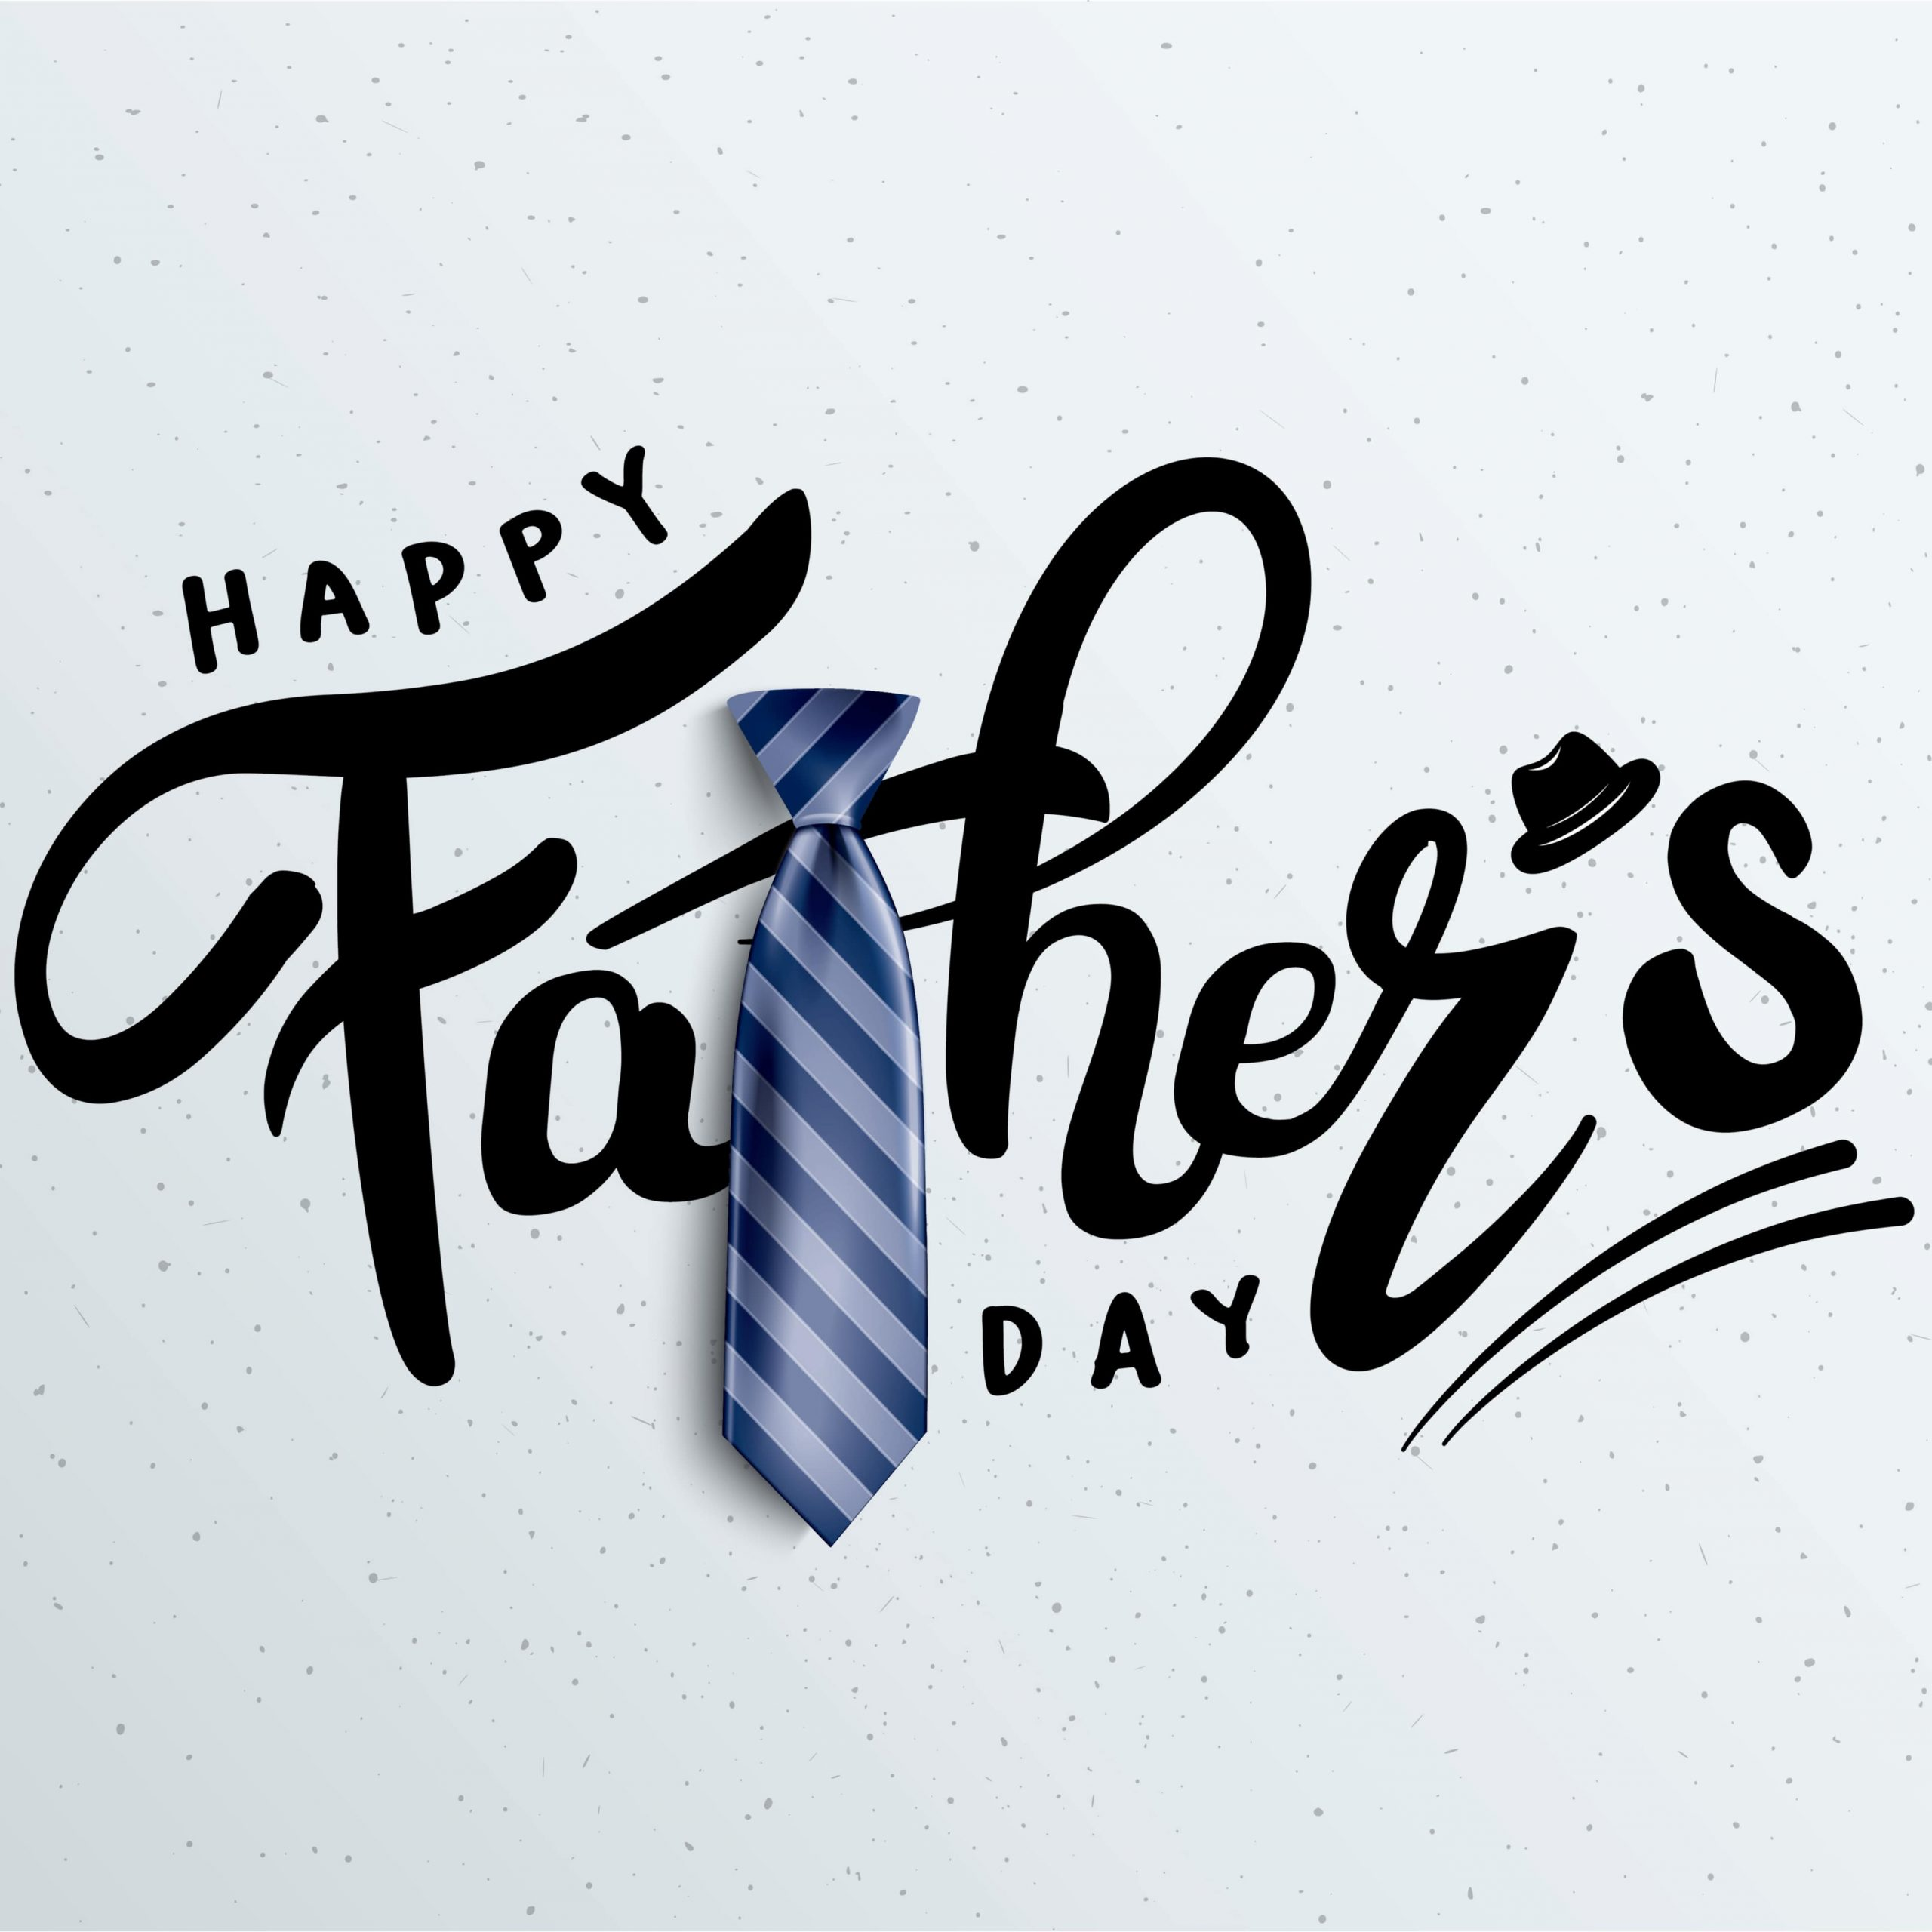 Top 10 Facts About Fathers Day You Should Know